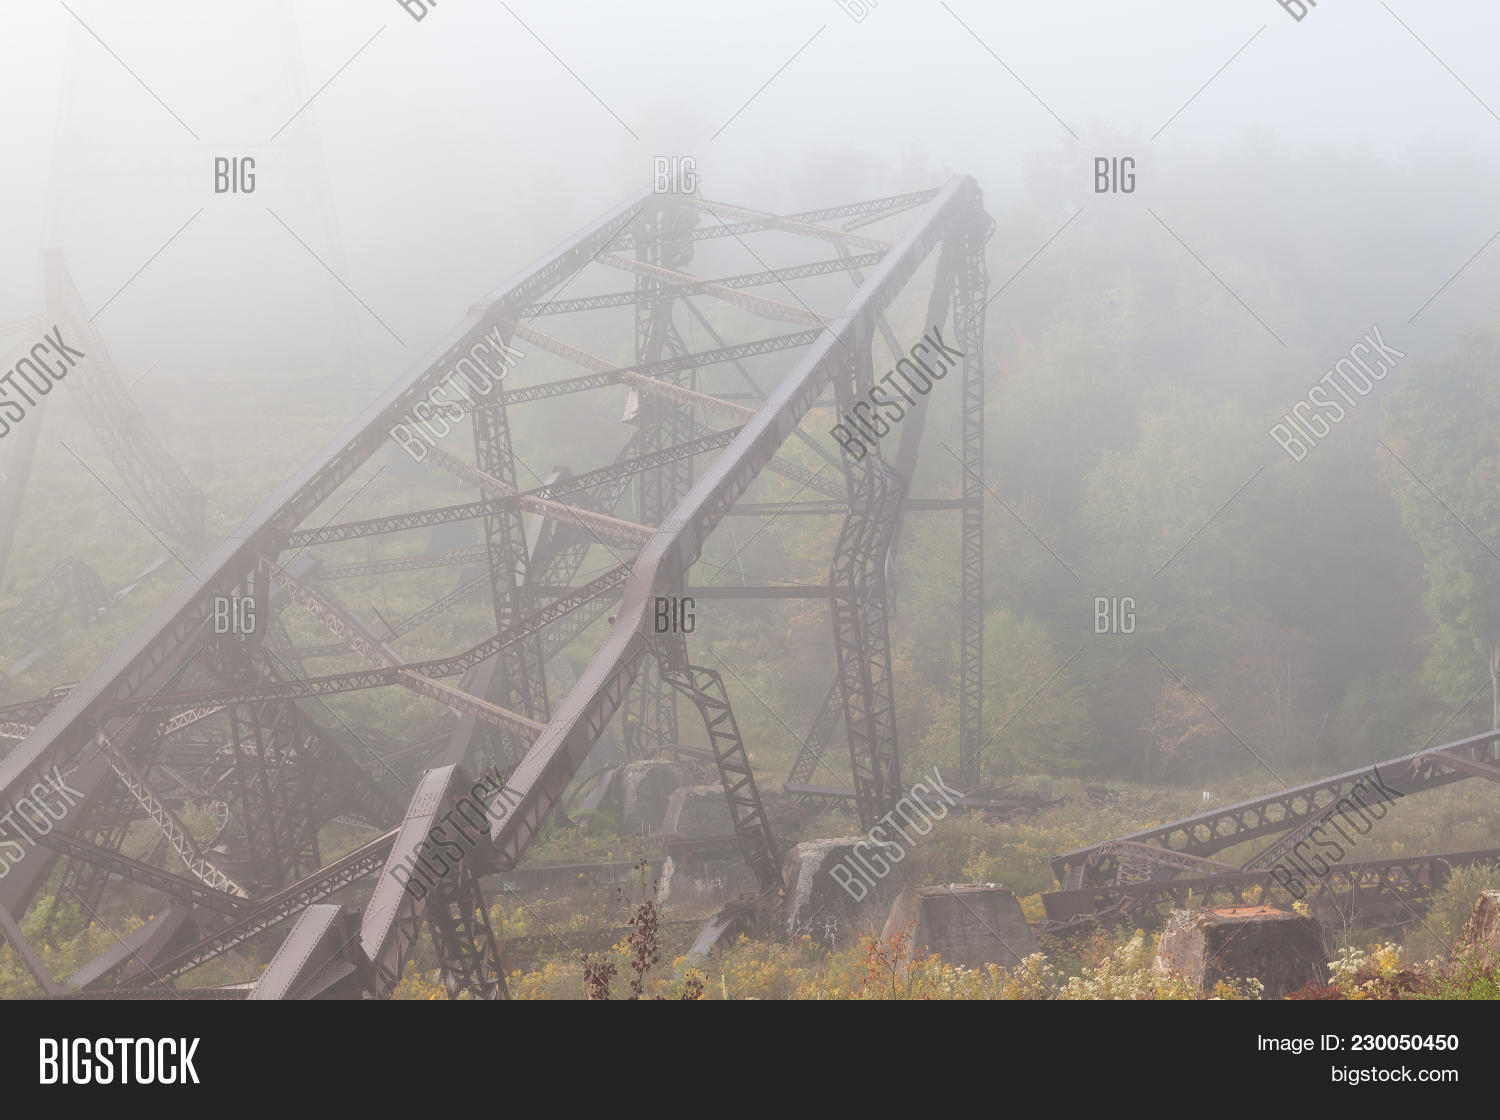 Mangled Metal Image & Photo (Free Trial) | Bigstock